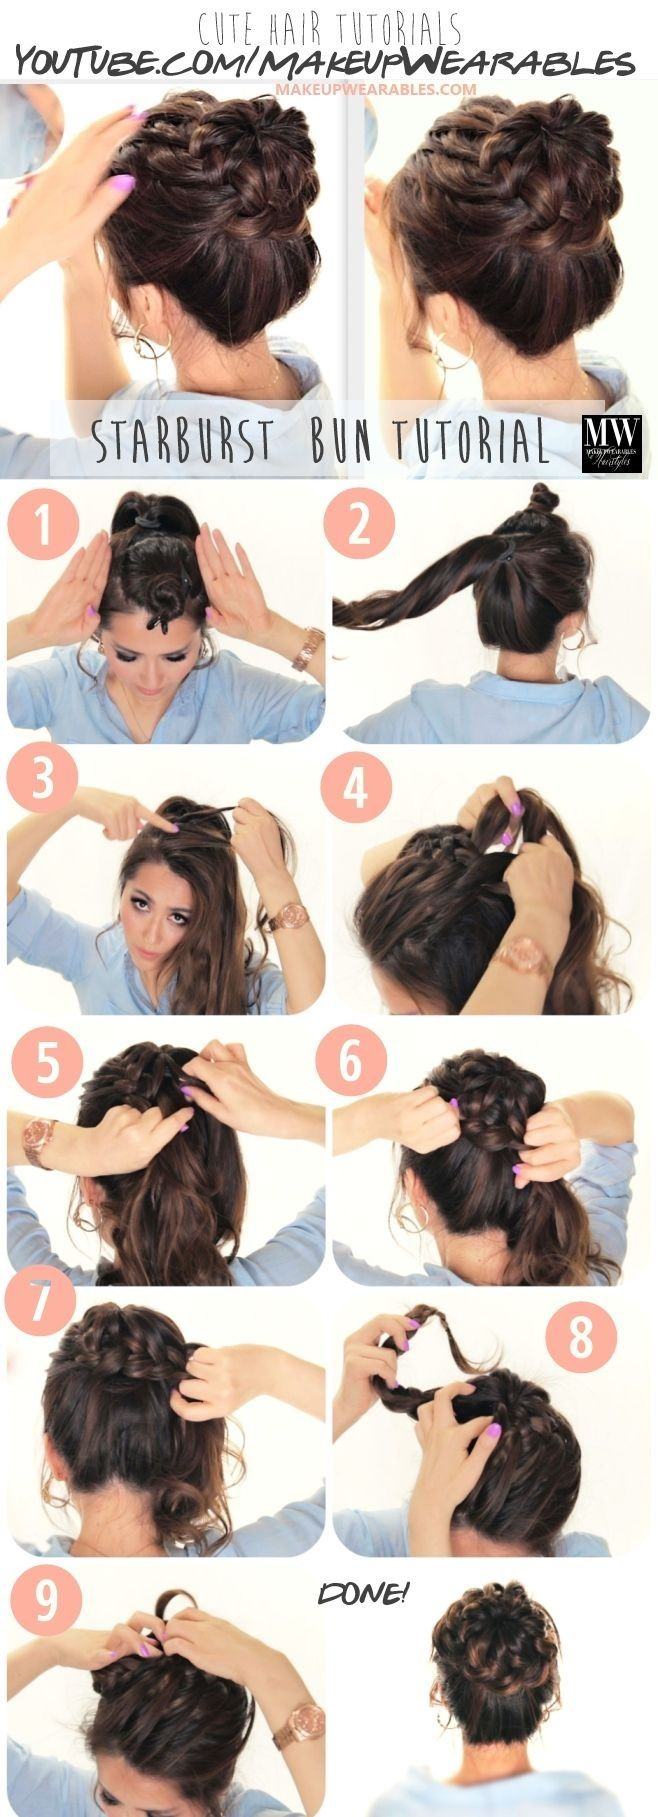 1000 Images About Coiffure On Pinterest French Braids Updo And